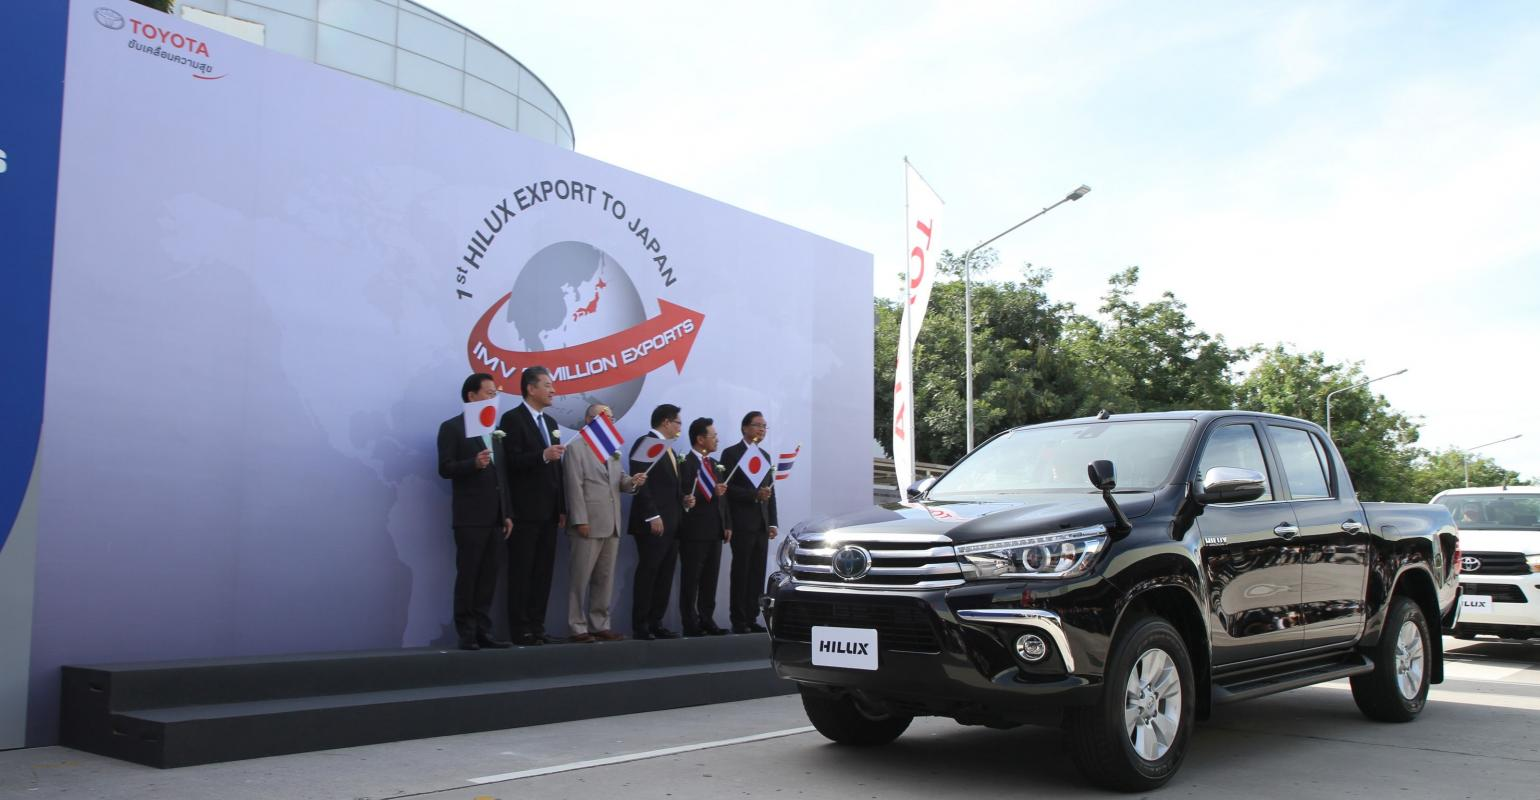 Toyota Thailand Automaker Begins Exporting Hilux Pickup To Japan Wardsauto